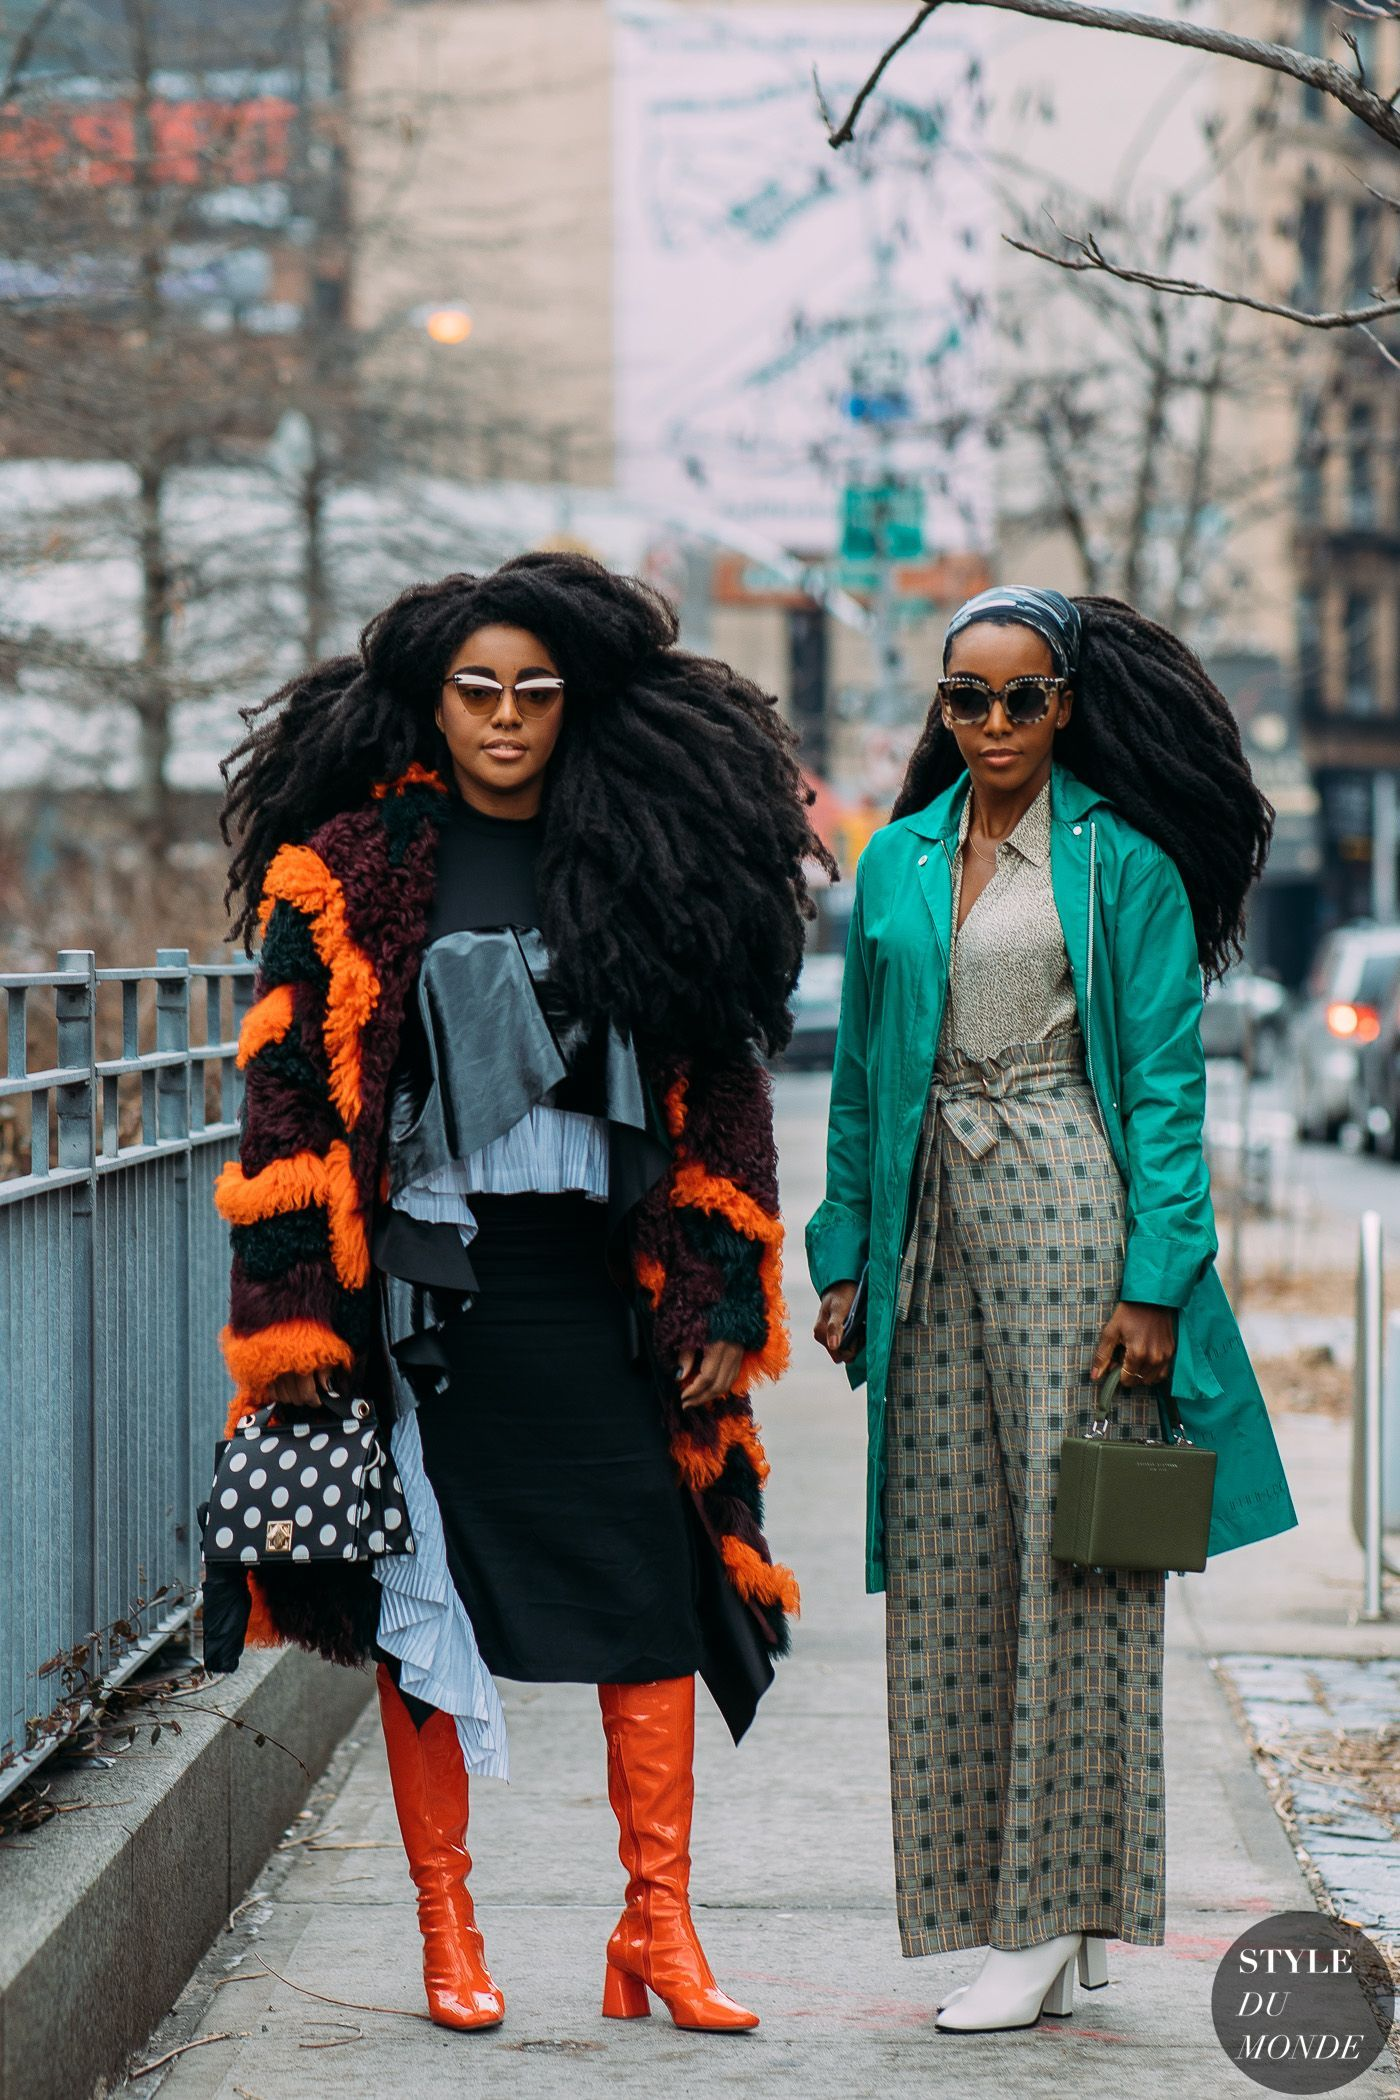 f2274ca71b9a TK Wonder and Cipriana Quann by STYLEDUMONDE Street Style Fashion  Photography NY FW18 20180210 48A4989